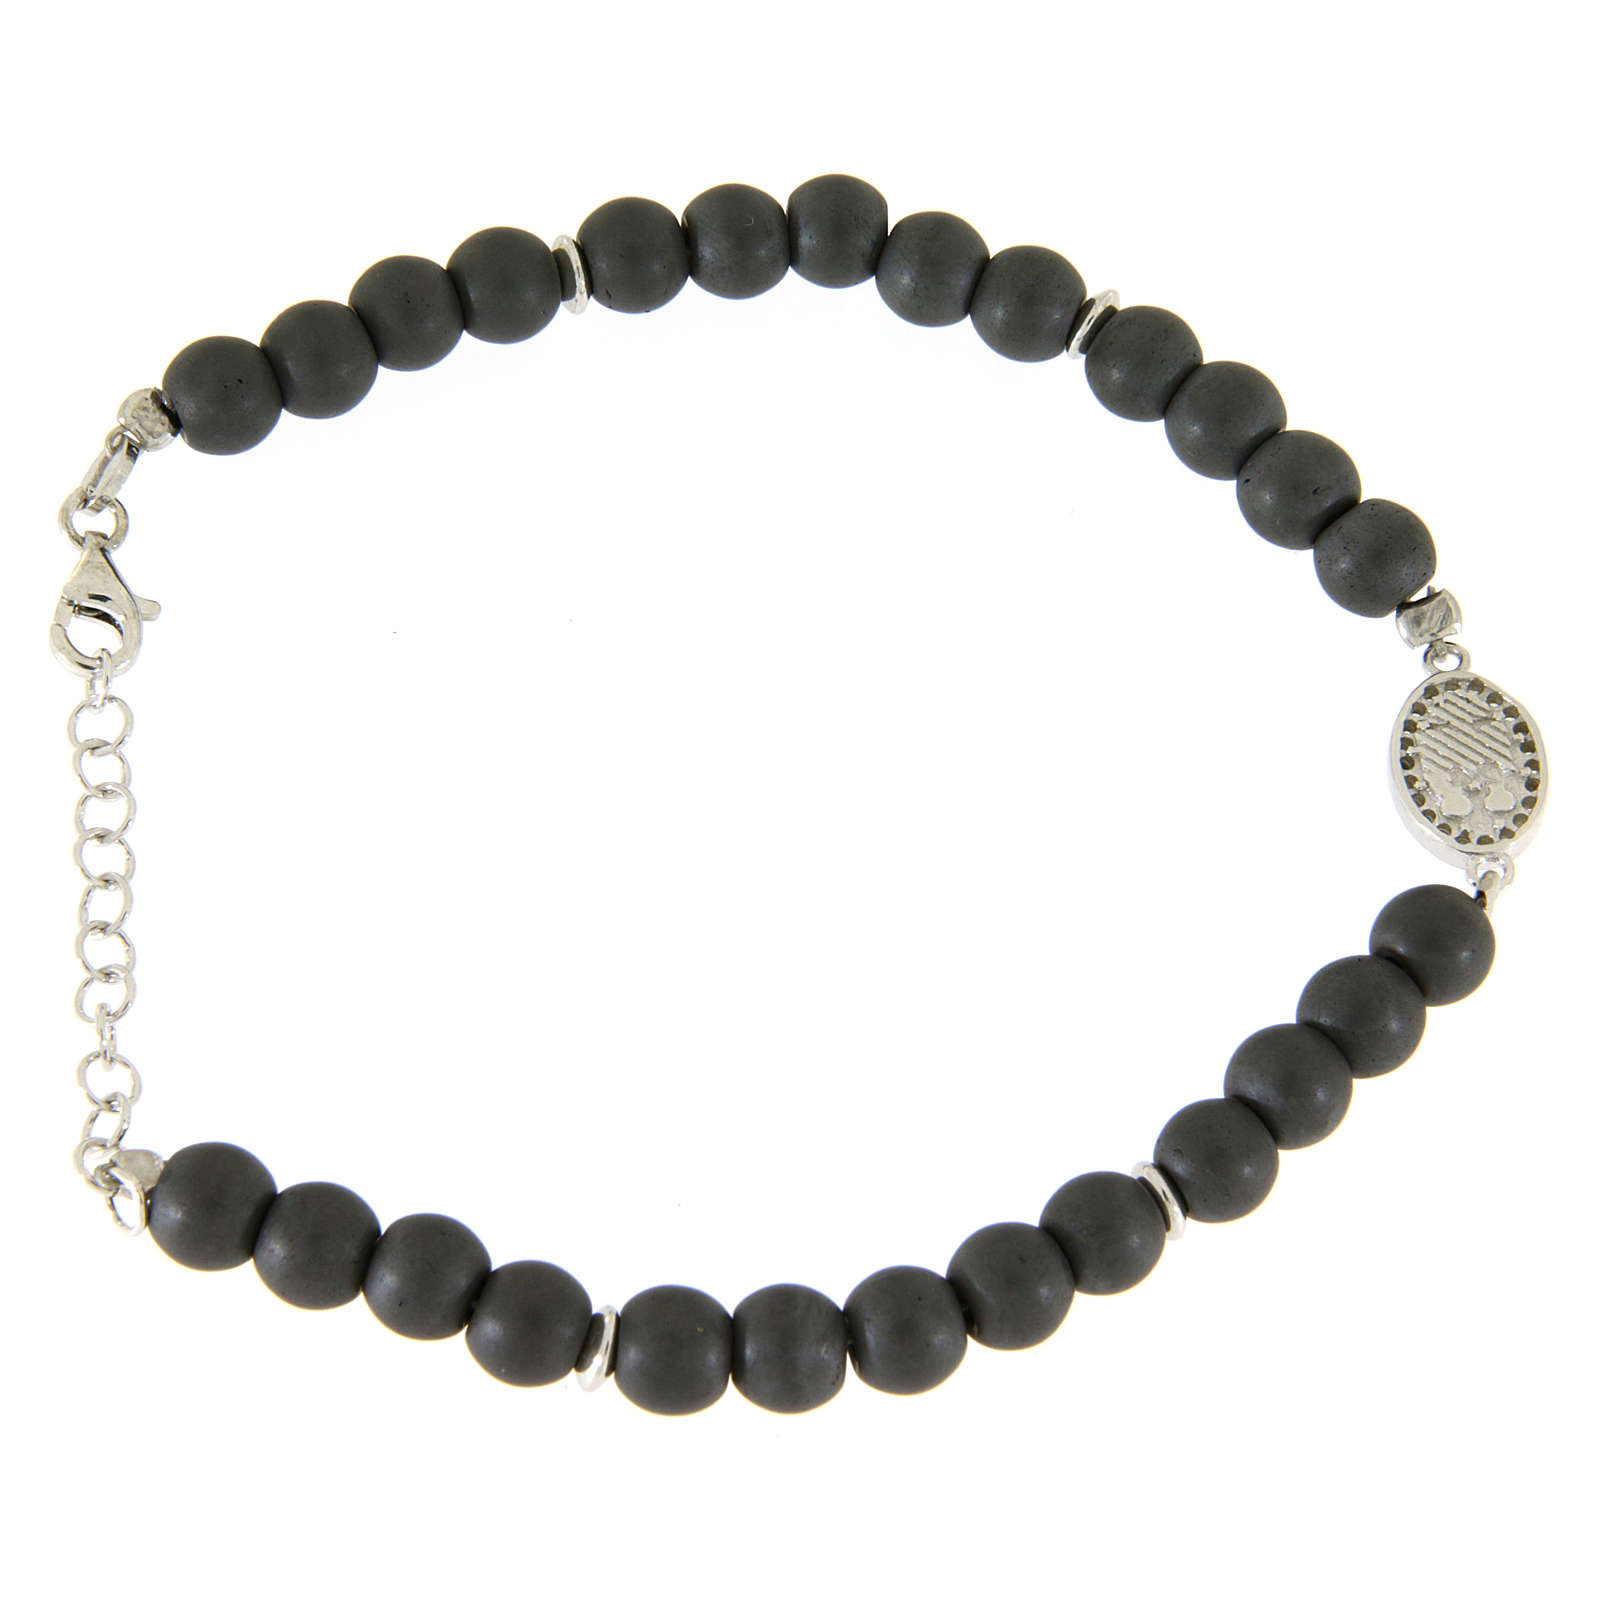 Opaque gray hematite stone bracelet with medal of Saint Rita white zircons 4